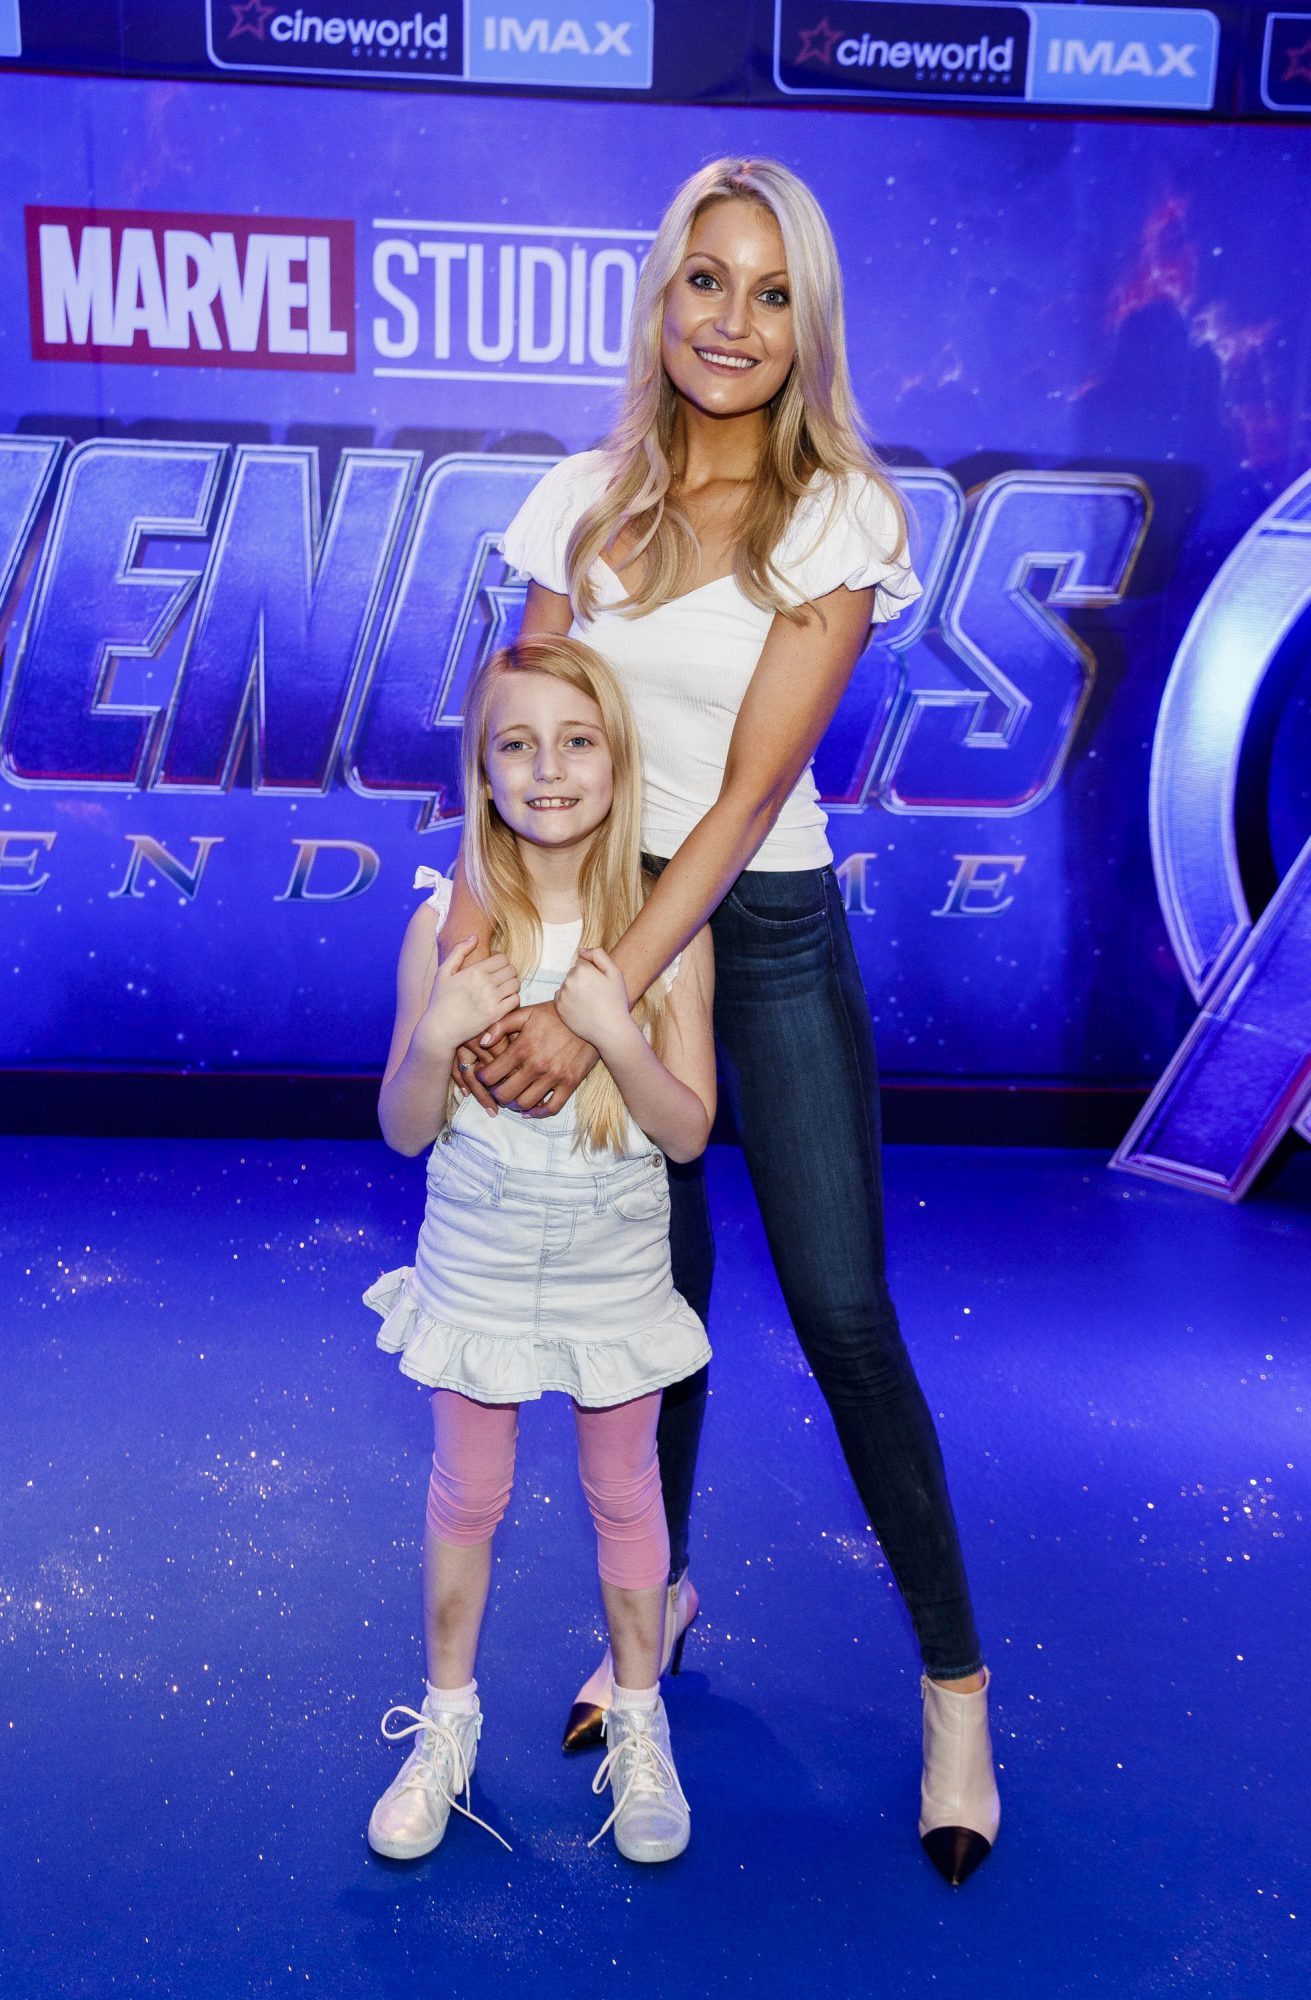 Kerri Nicole Blanc and daughter Kayla pictured at the special preview screening of Marvel Studios' Avengers: Endgame at Cineworld Dublin. Picture by: Andres Poveda